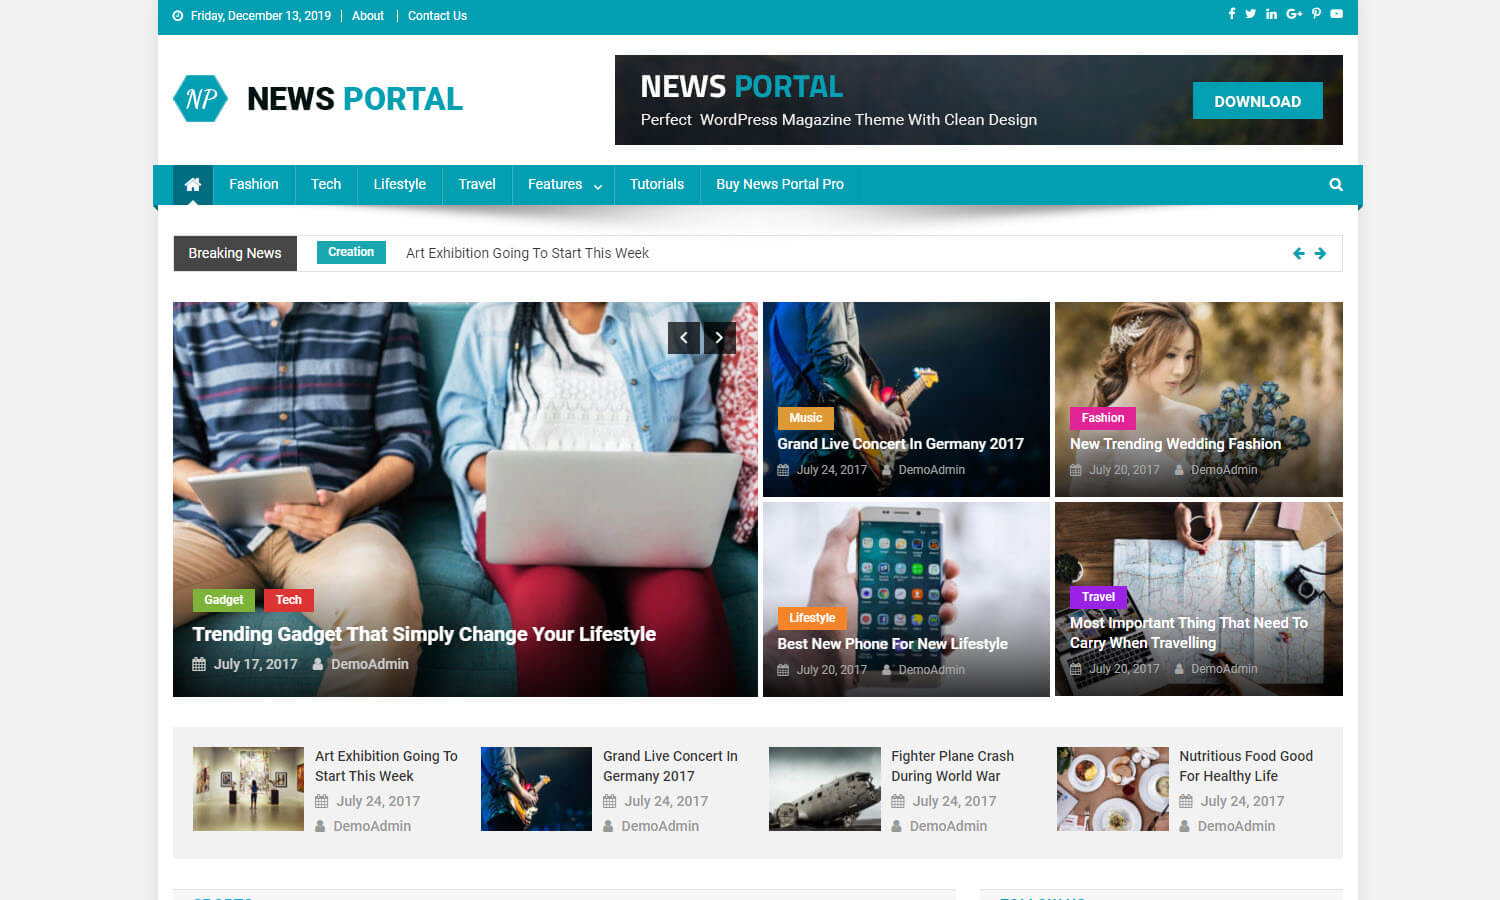 News Portal screenshot